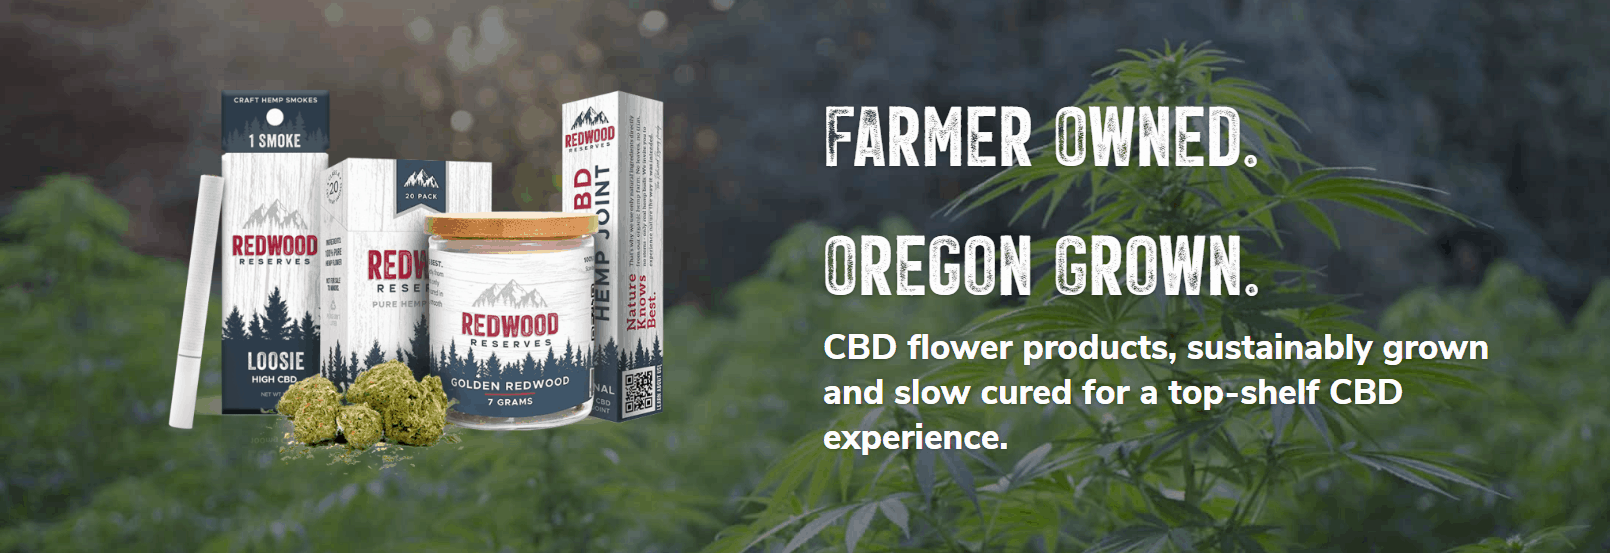 Redwood Reserves CBD Coupons Farmers Growned